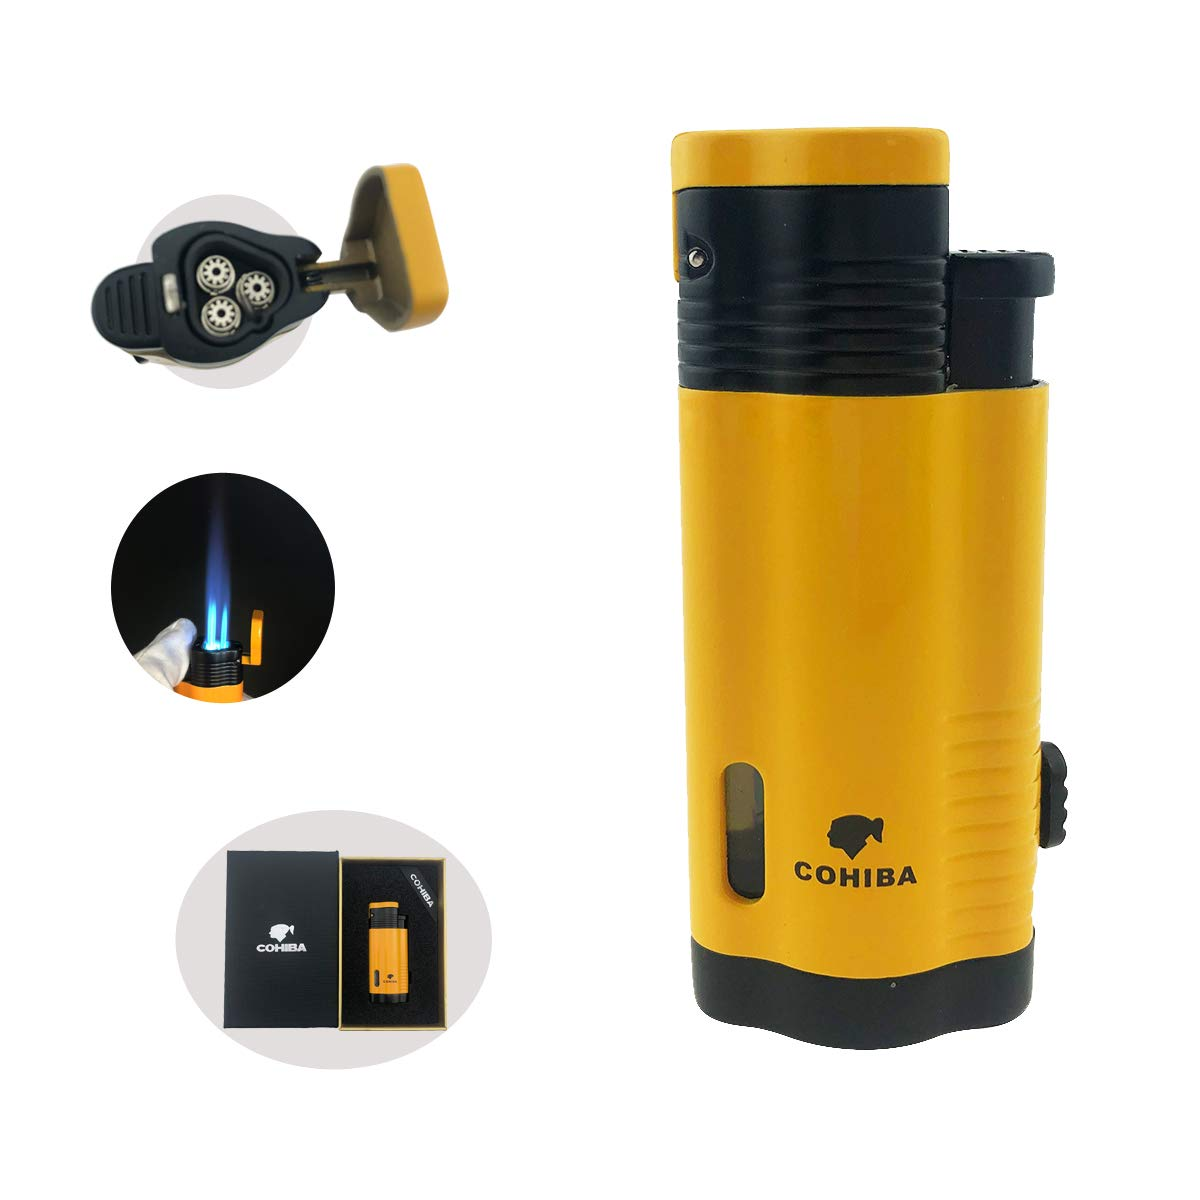 Cohiba Cigar Lighter 3 Torch Jet Flame with Punch Windproof Butane Fuel Lighter Refillable Inflatable(Without Gas) (Yellow)